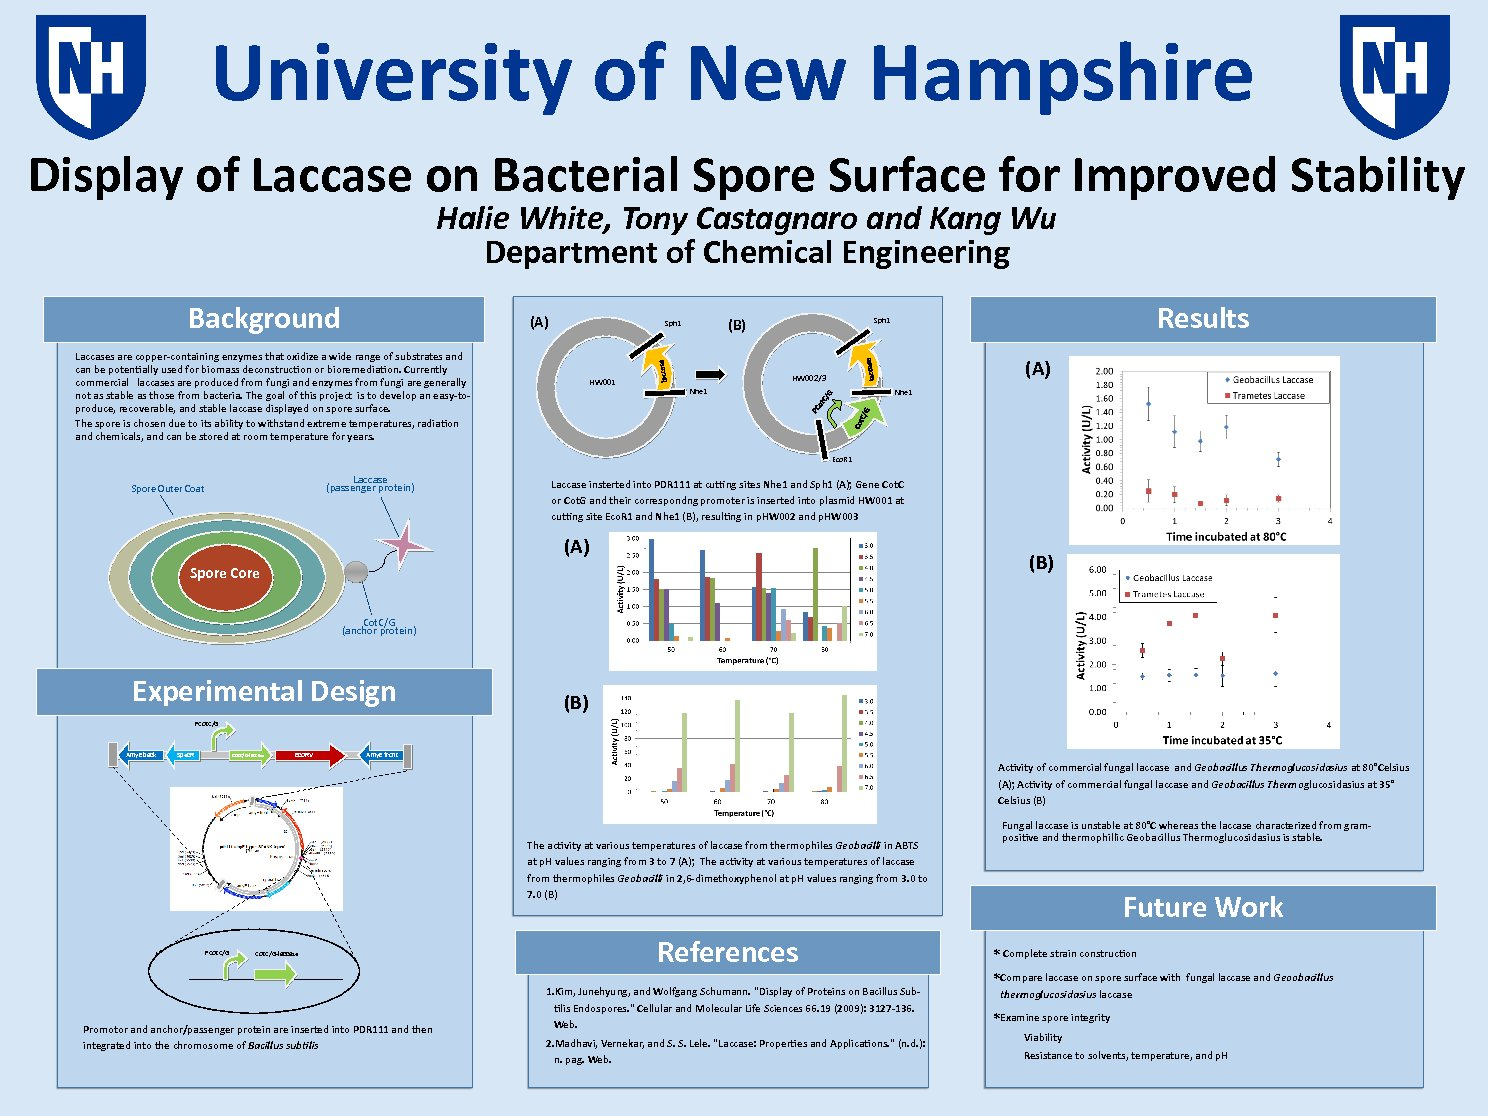 Display Of Laccase On Bacterial Spore Surface For Improved Stability by Hac39